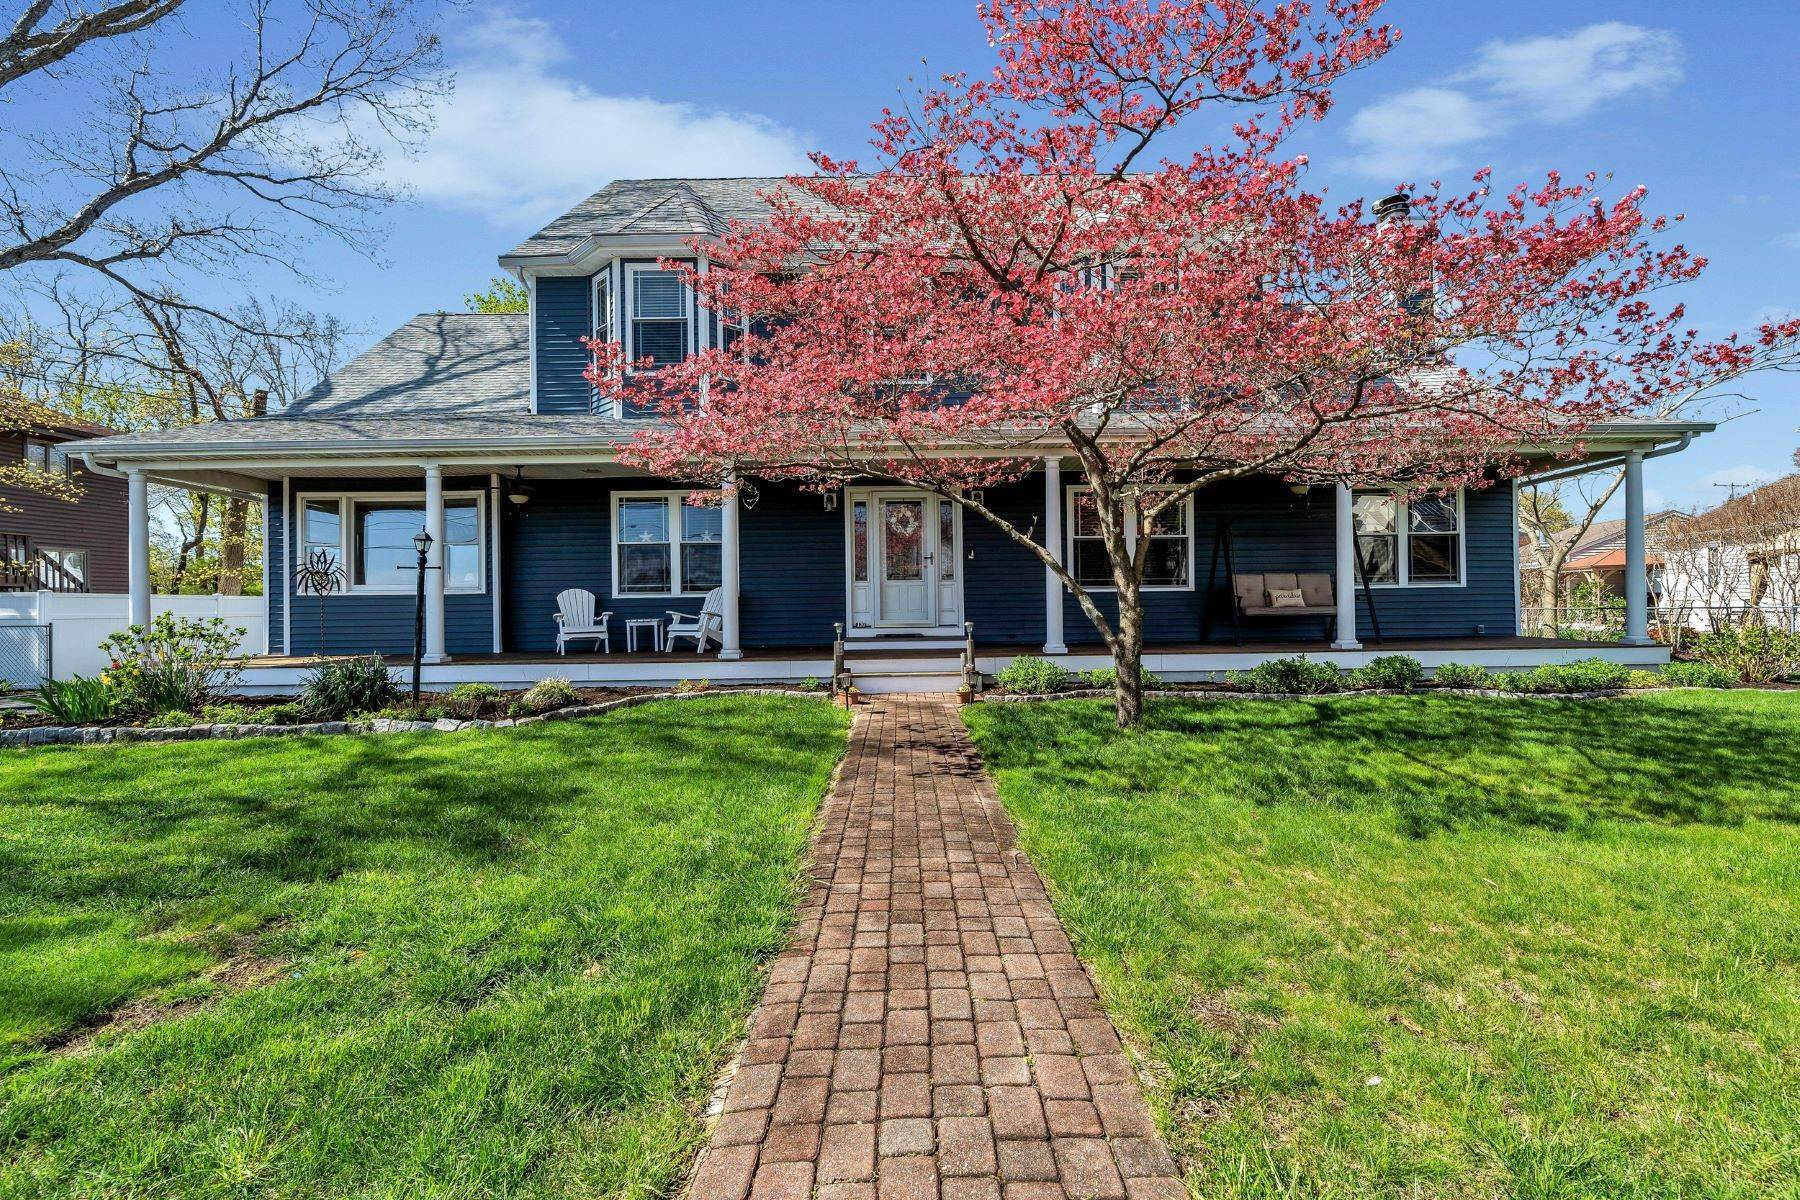 Single Family Homes for Sale at Panoramic Views of the Manasquan River 120 Riverside Drive N Brick, New Jersey 08724 United States